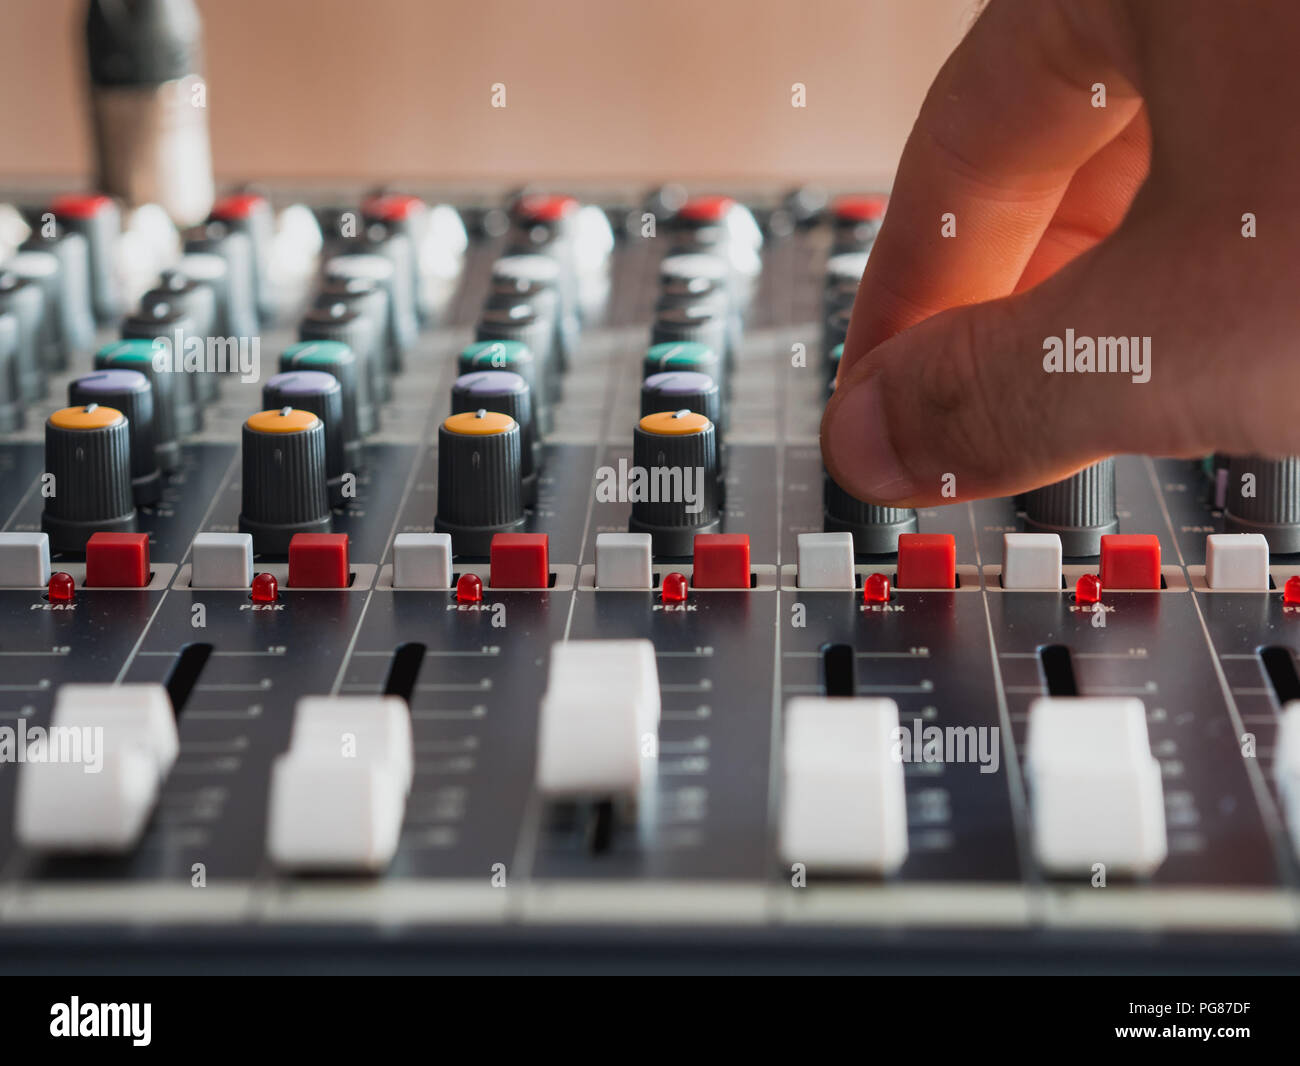 Adjusting buttons on audio mixer in music studio close up - Stock Image